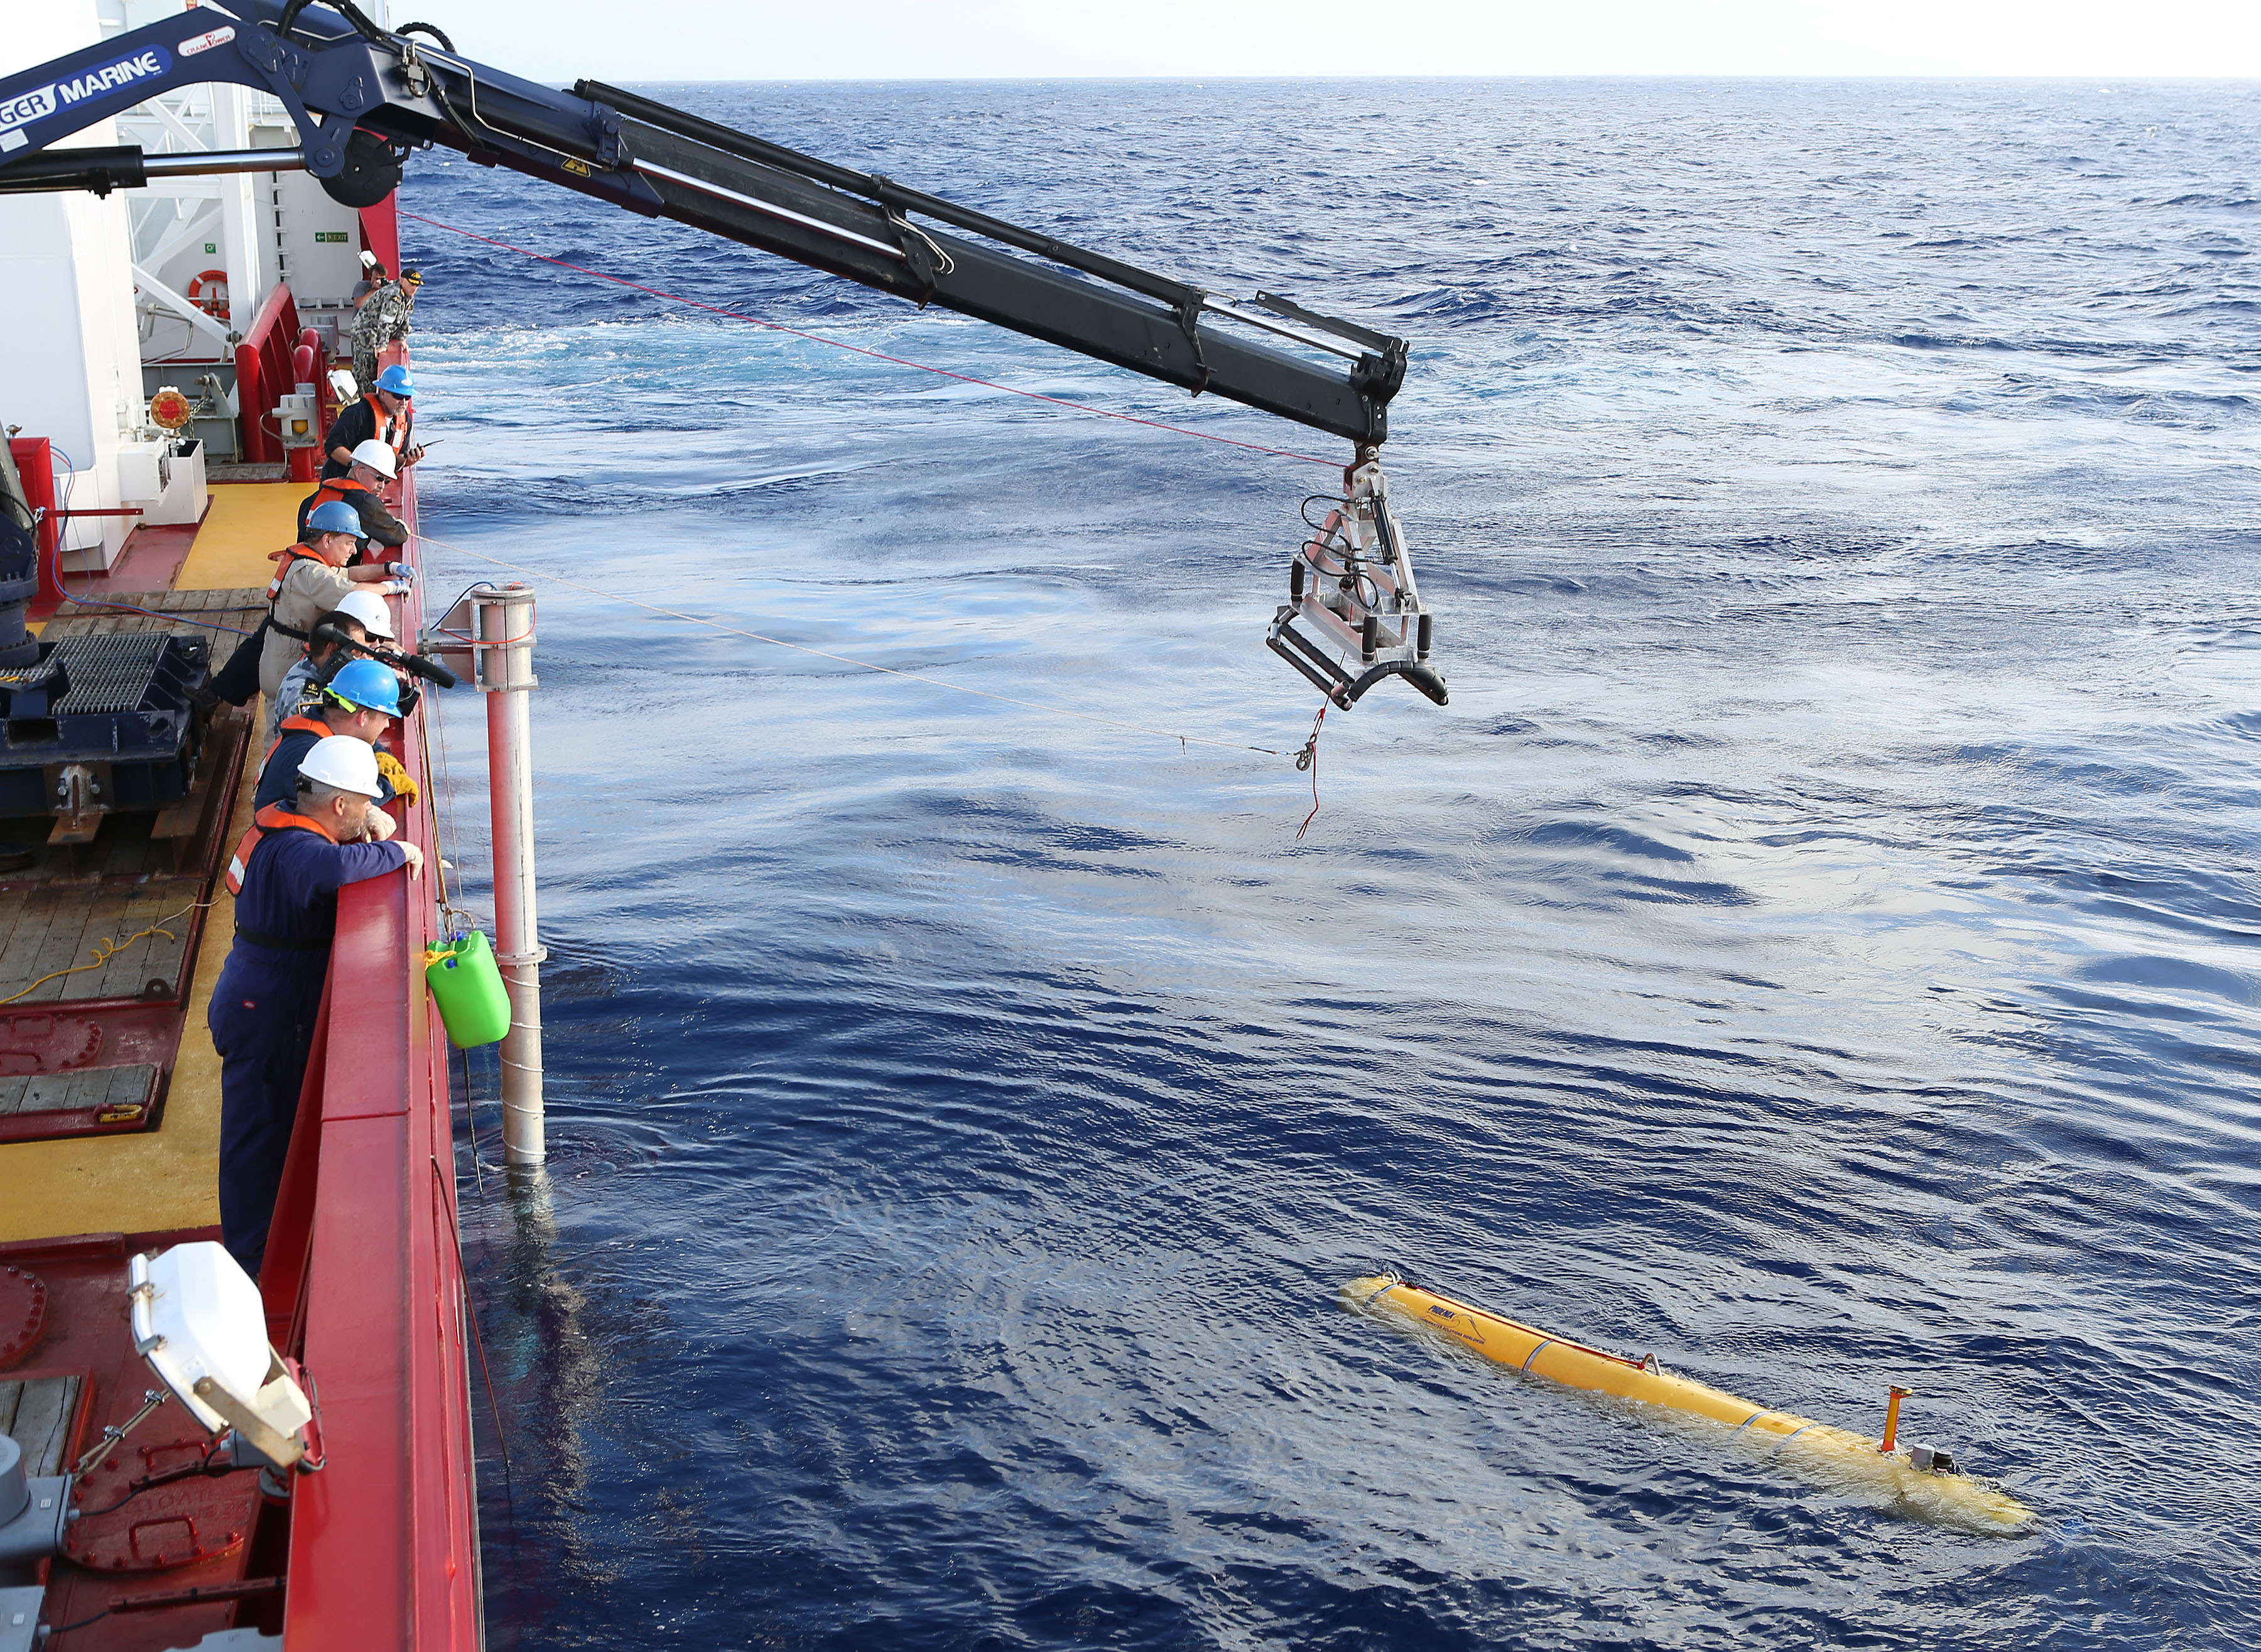 In this handout image provided by Commonwealth of Australia, Department of Defence, Phoenix Autonomous Underwater Vehicle (AUV) Bluefin-21 is craned over the side of Australian Defence Vessel Ocean Shield in the search for missing Malaysia Airlines flight MH 370 on April 14, 2014.